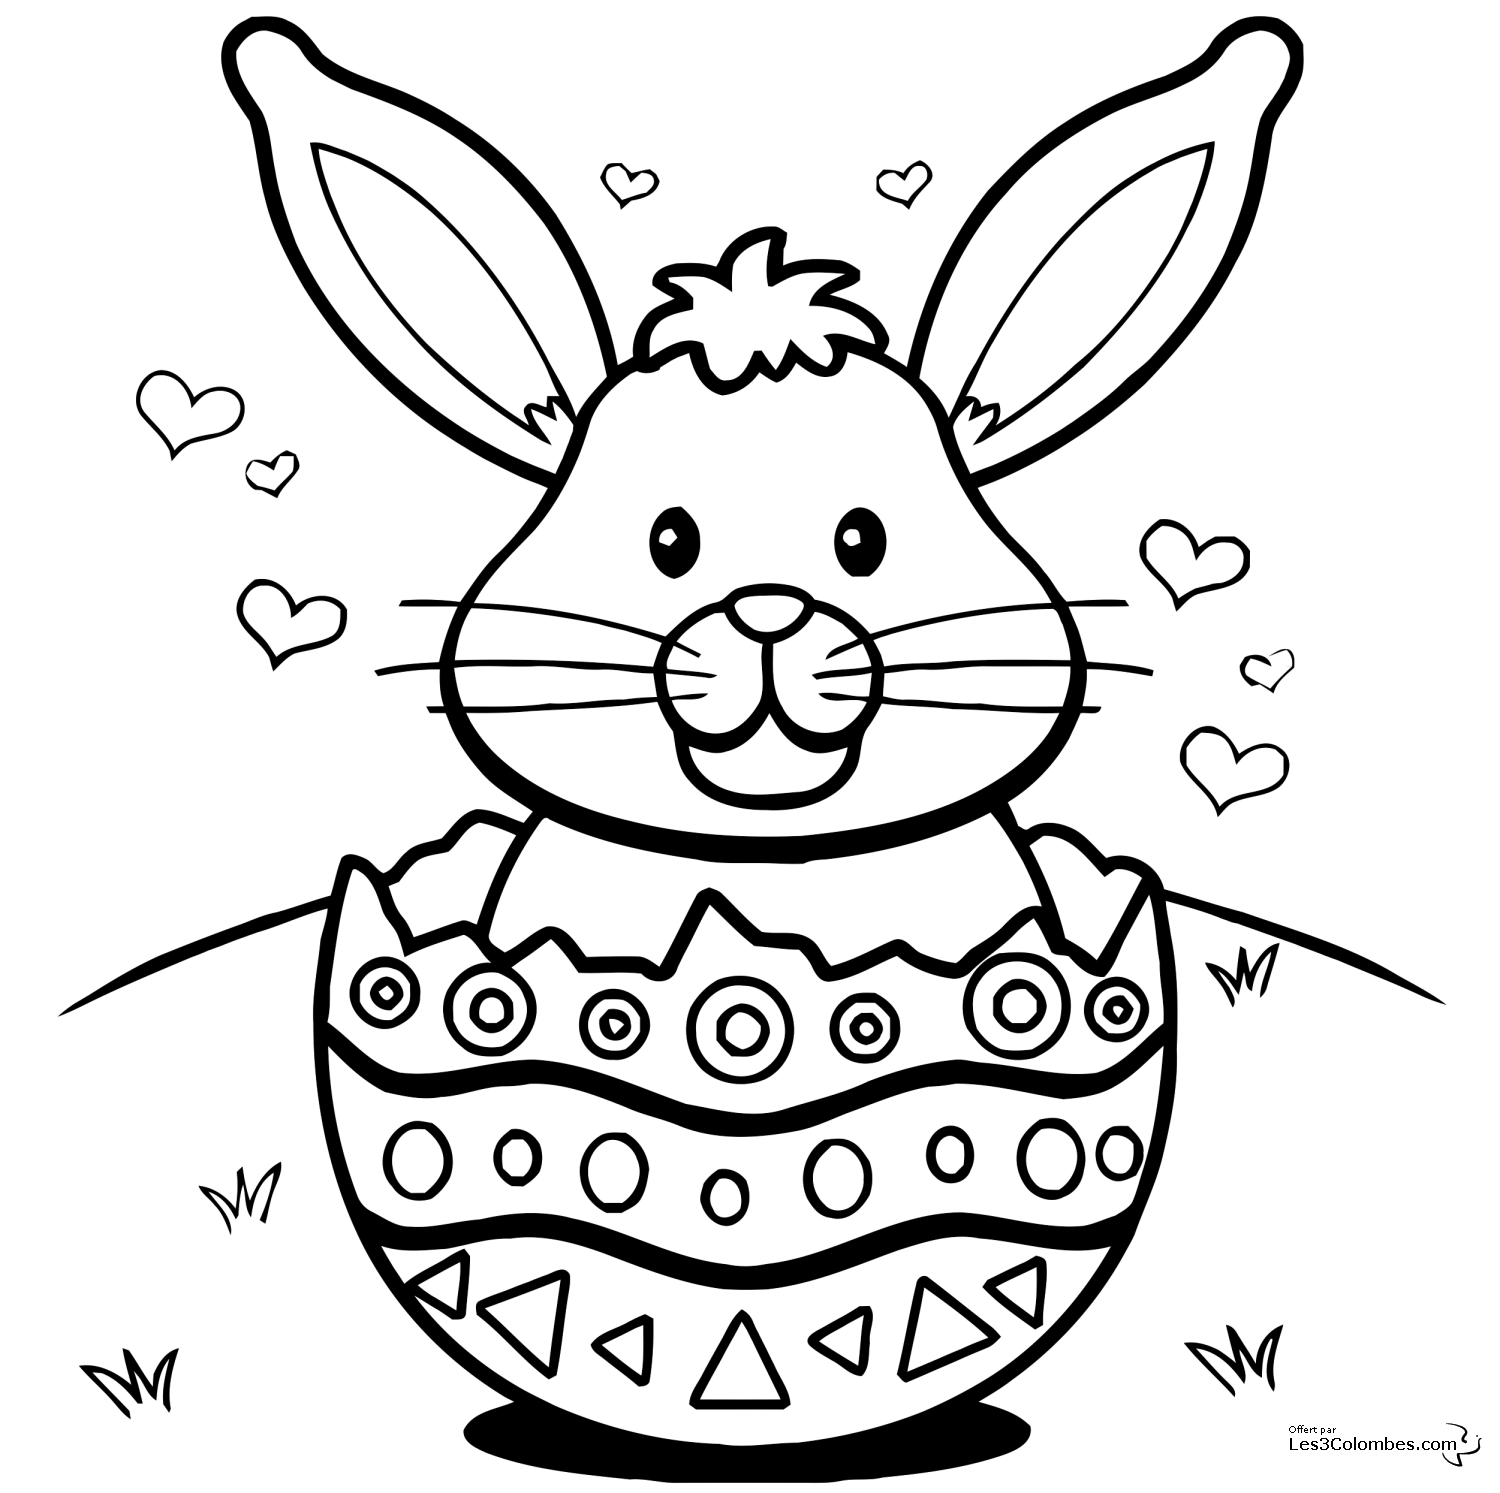 Bunny coloring pages, Easter bunny pictures, Easter colouring